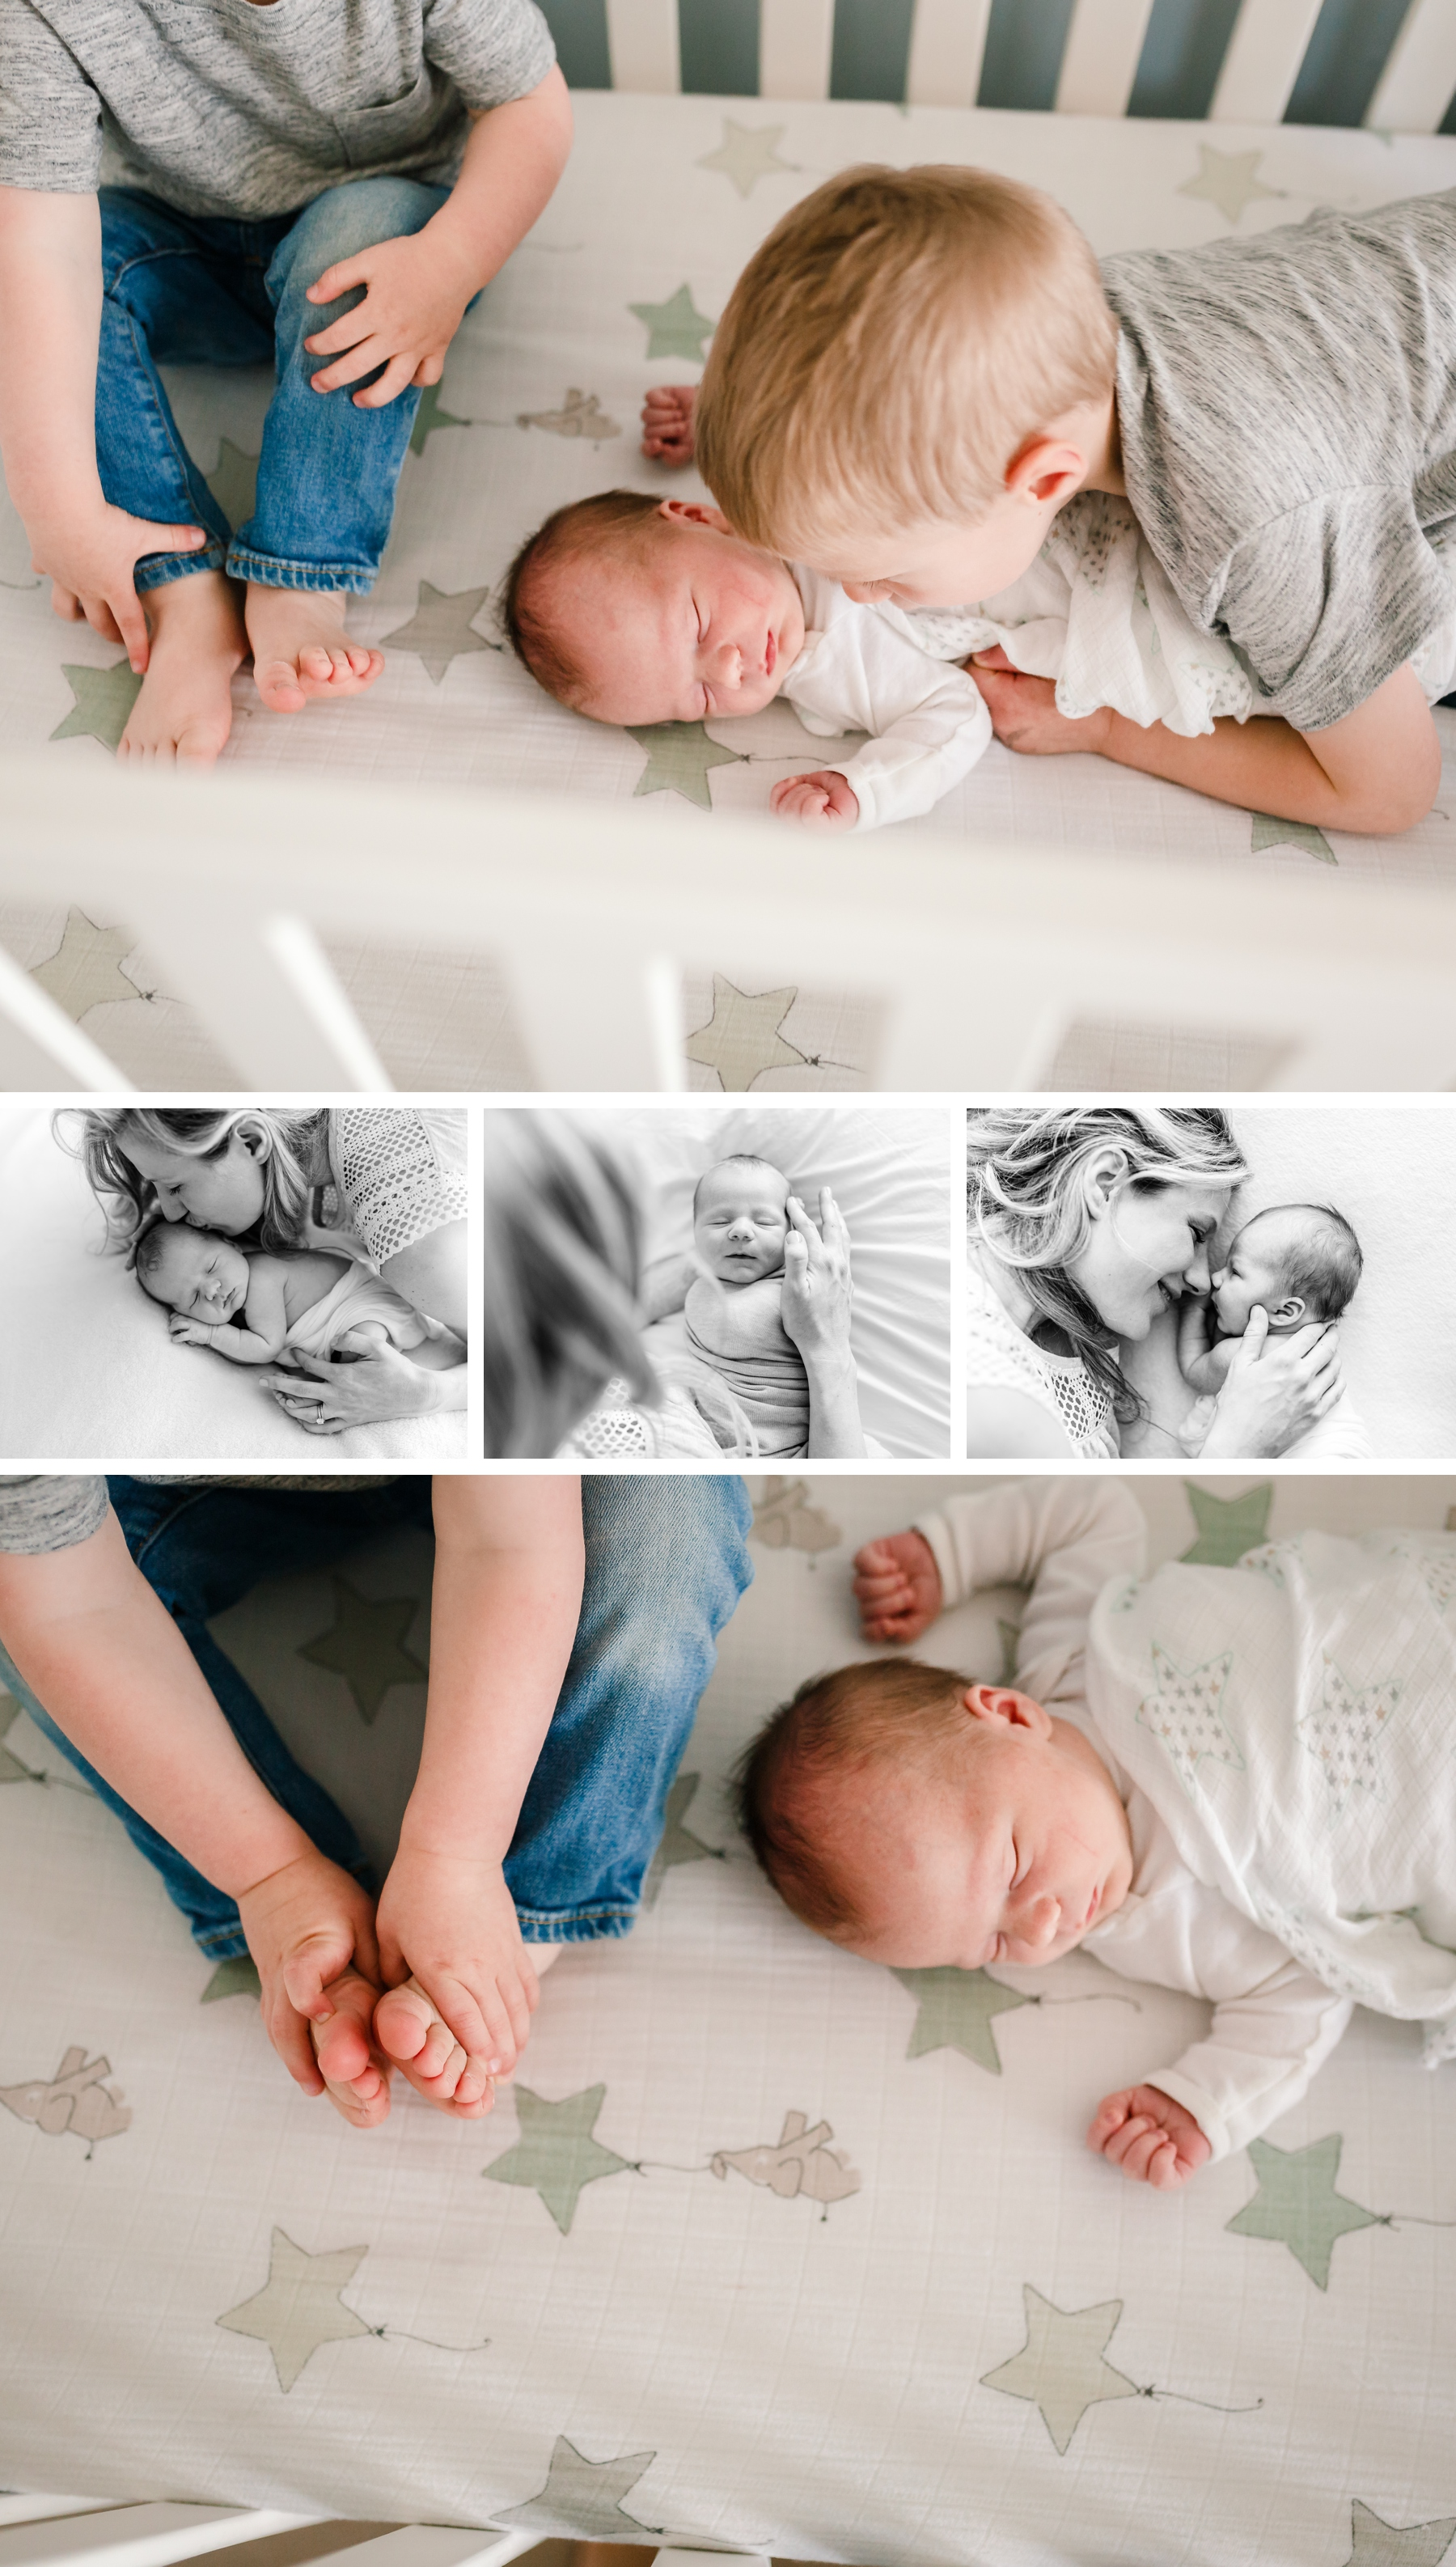 chicago newborn lifestyle photographer jenny grimm photography simple organic natural portraits baby boy brothers family of three